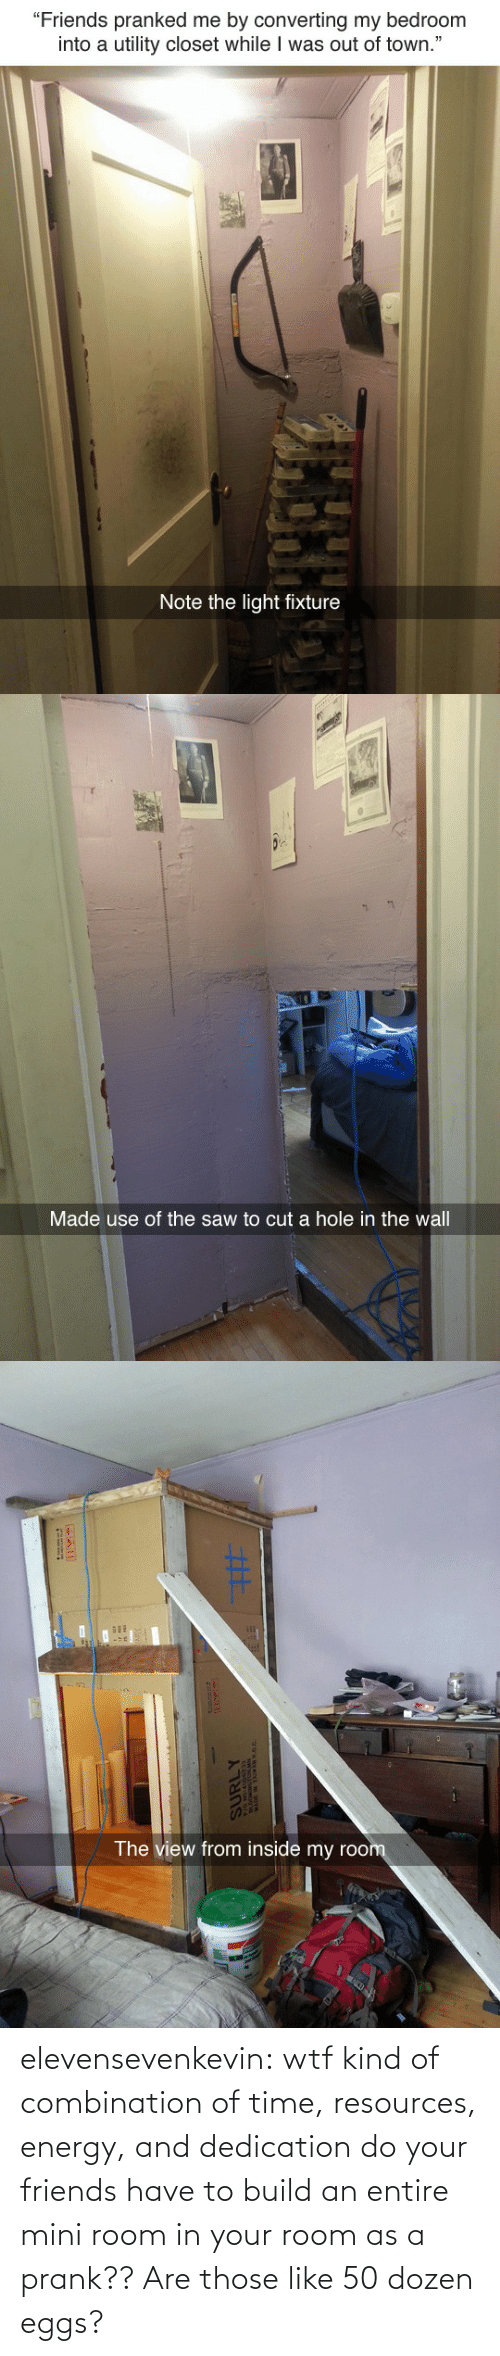 """the wall: """"Friends pranked me by converting my bedroom  into a utility closet while I was out of town.""""  Note the light fixture   Made use of the saw to cut a hole in the wall   The view from inside my roo elevensevenkevin:  wtf kind of combination of time, resources, energy, and dedication do your friends have to build an entire mini room in your room as a prank??    Are those like 50 dozen eggs?"""